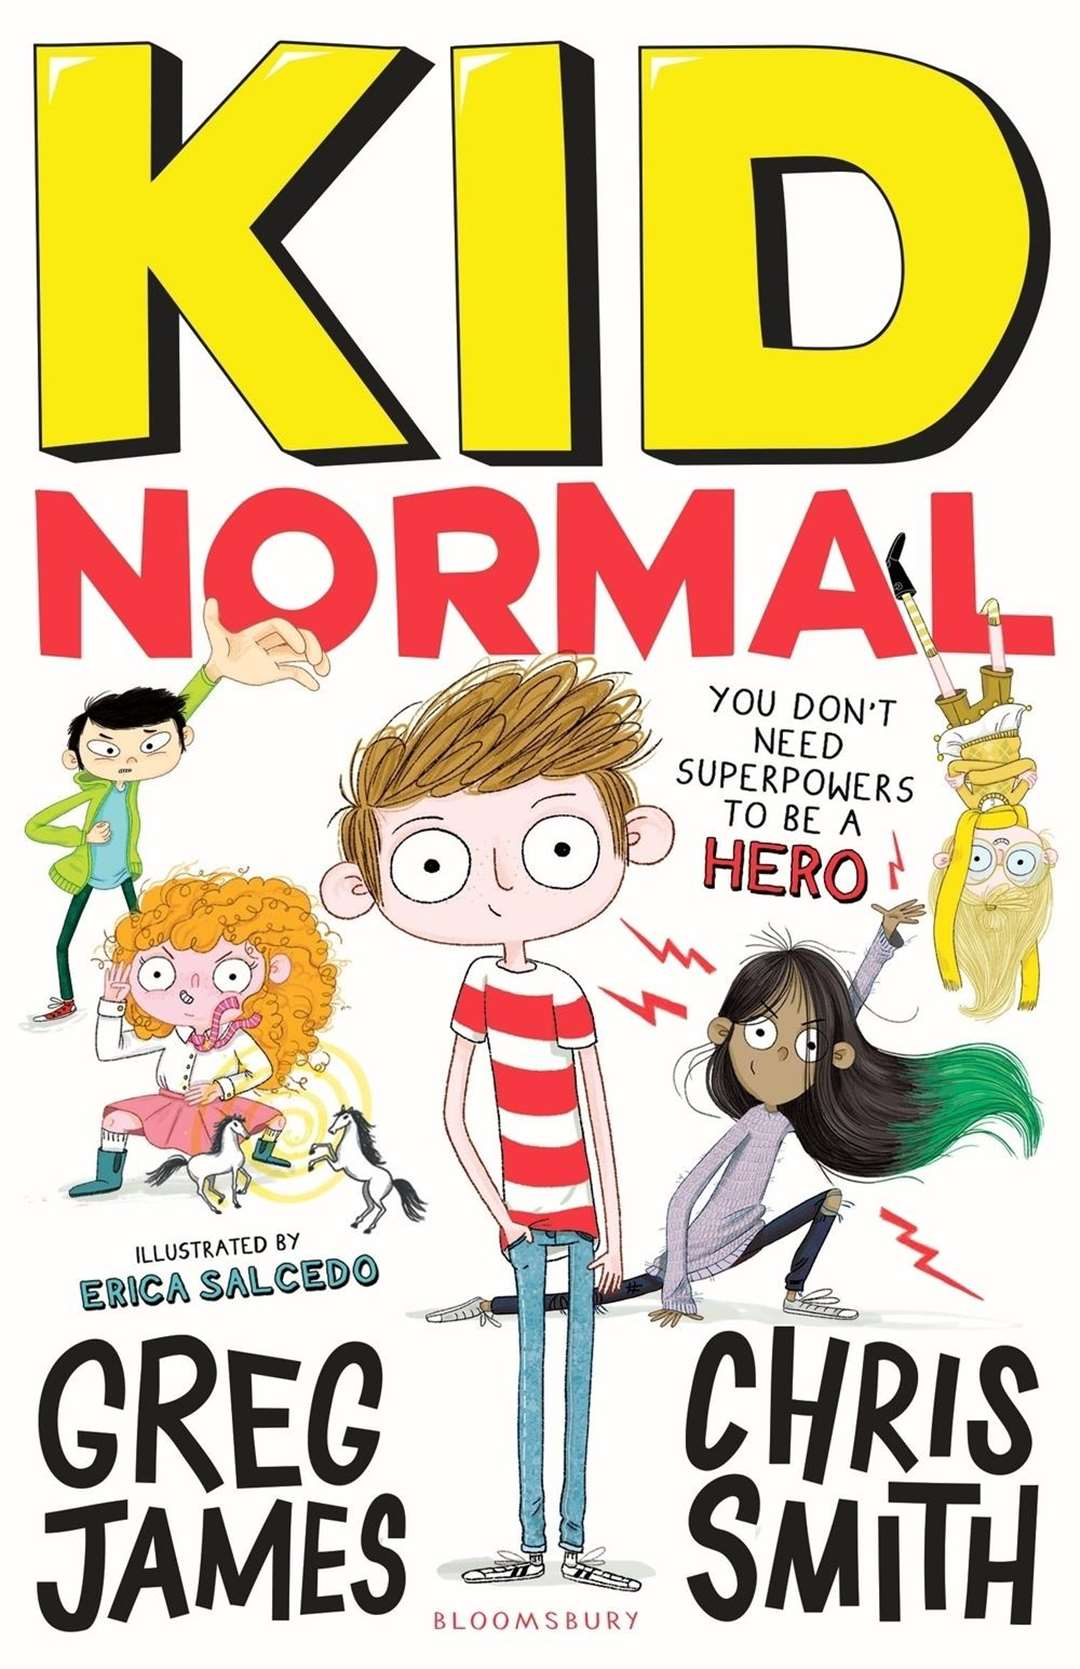 Greg James' and Chris Smith's book, Kid Normal